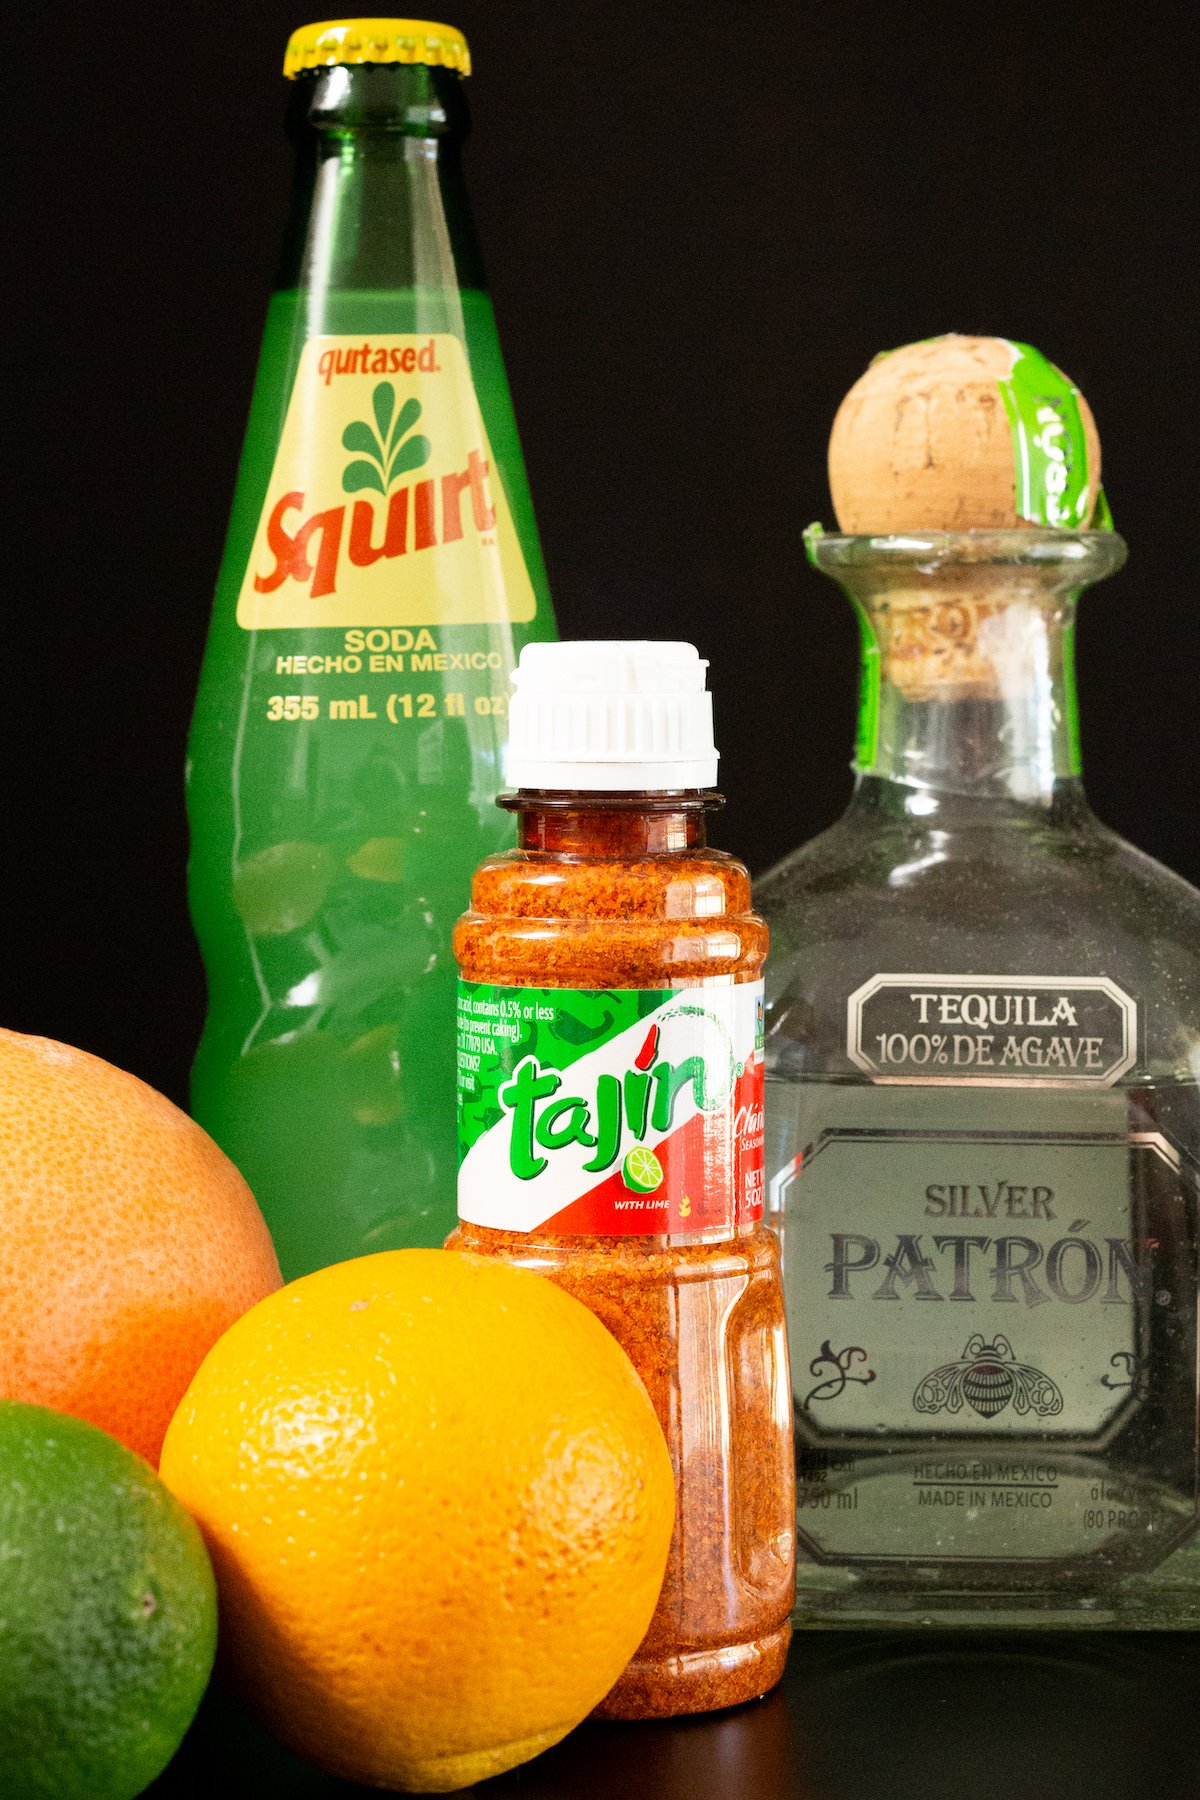 All the ingredients to make a cantarito on a black background: a fresh grapefruit, an orange, a lime, tajin chile salt, squirt soda in a glass bottle, and a bottle of patron.